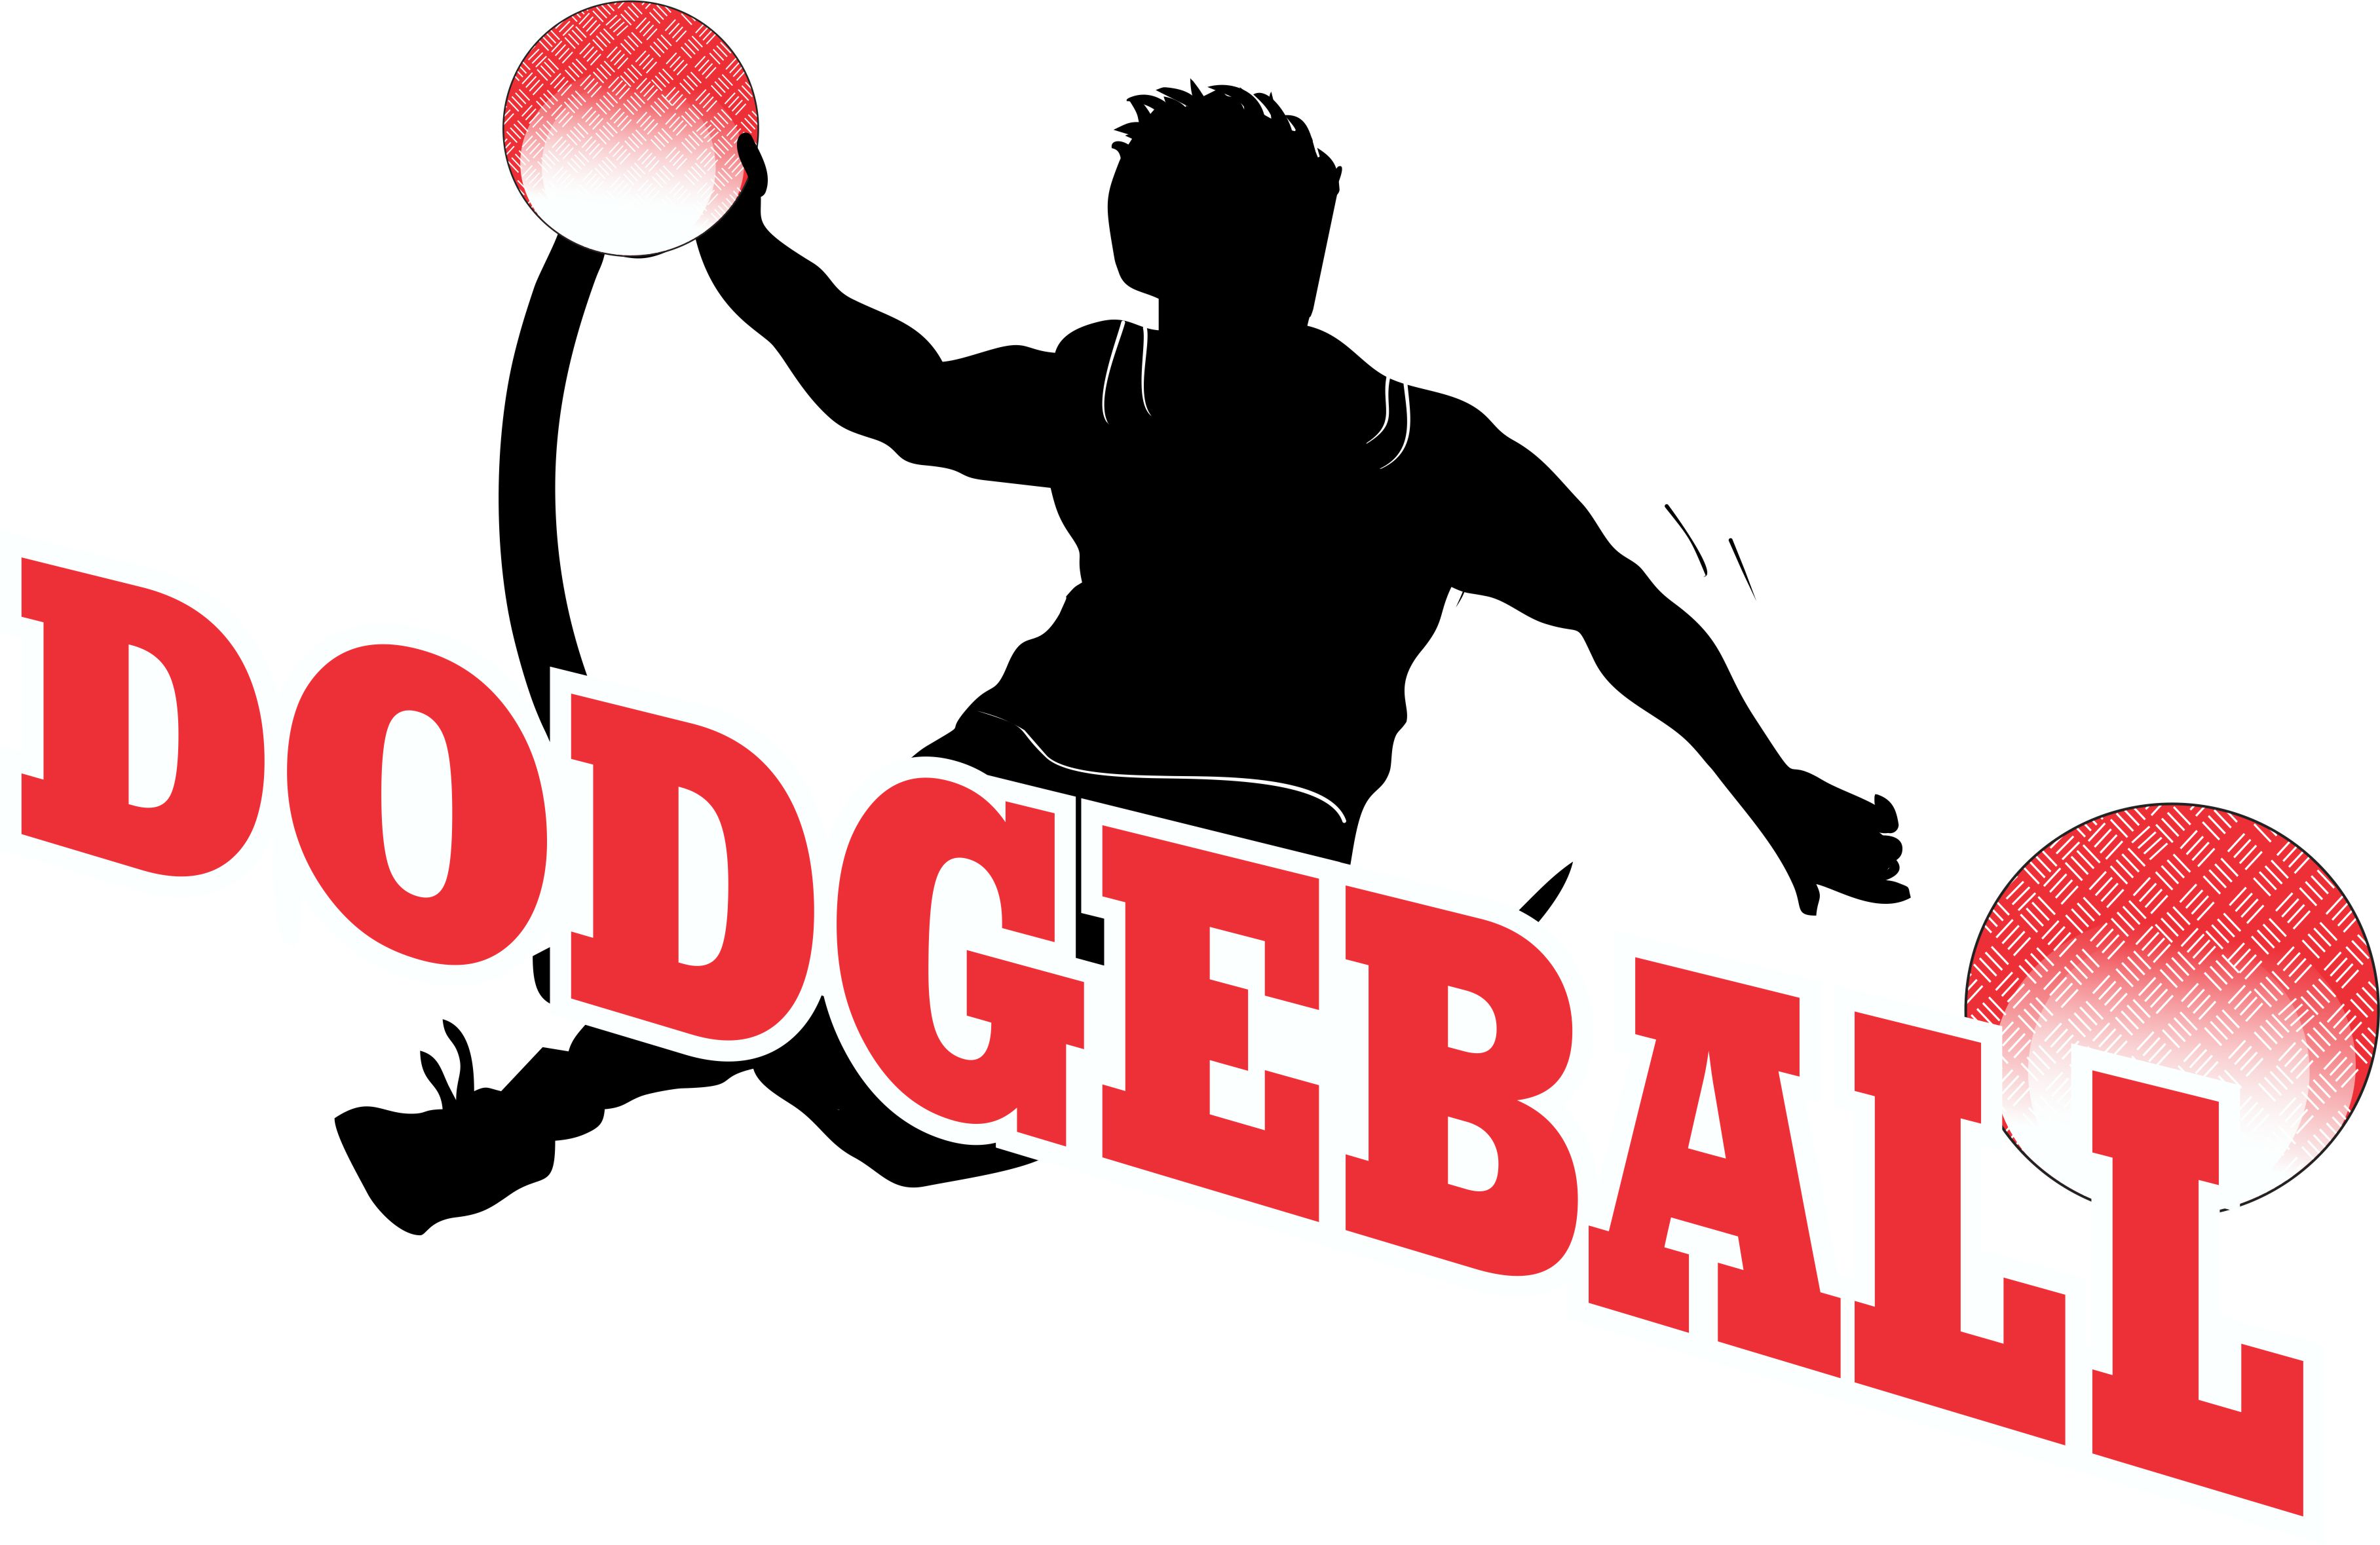 Dodgeball clipart youth. Summer sports basketball july